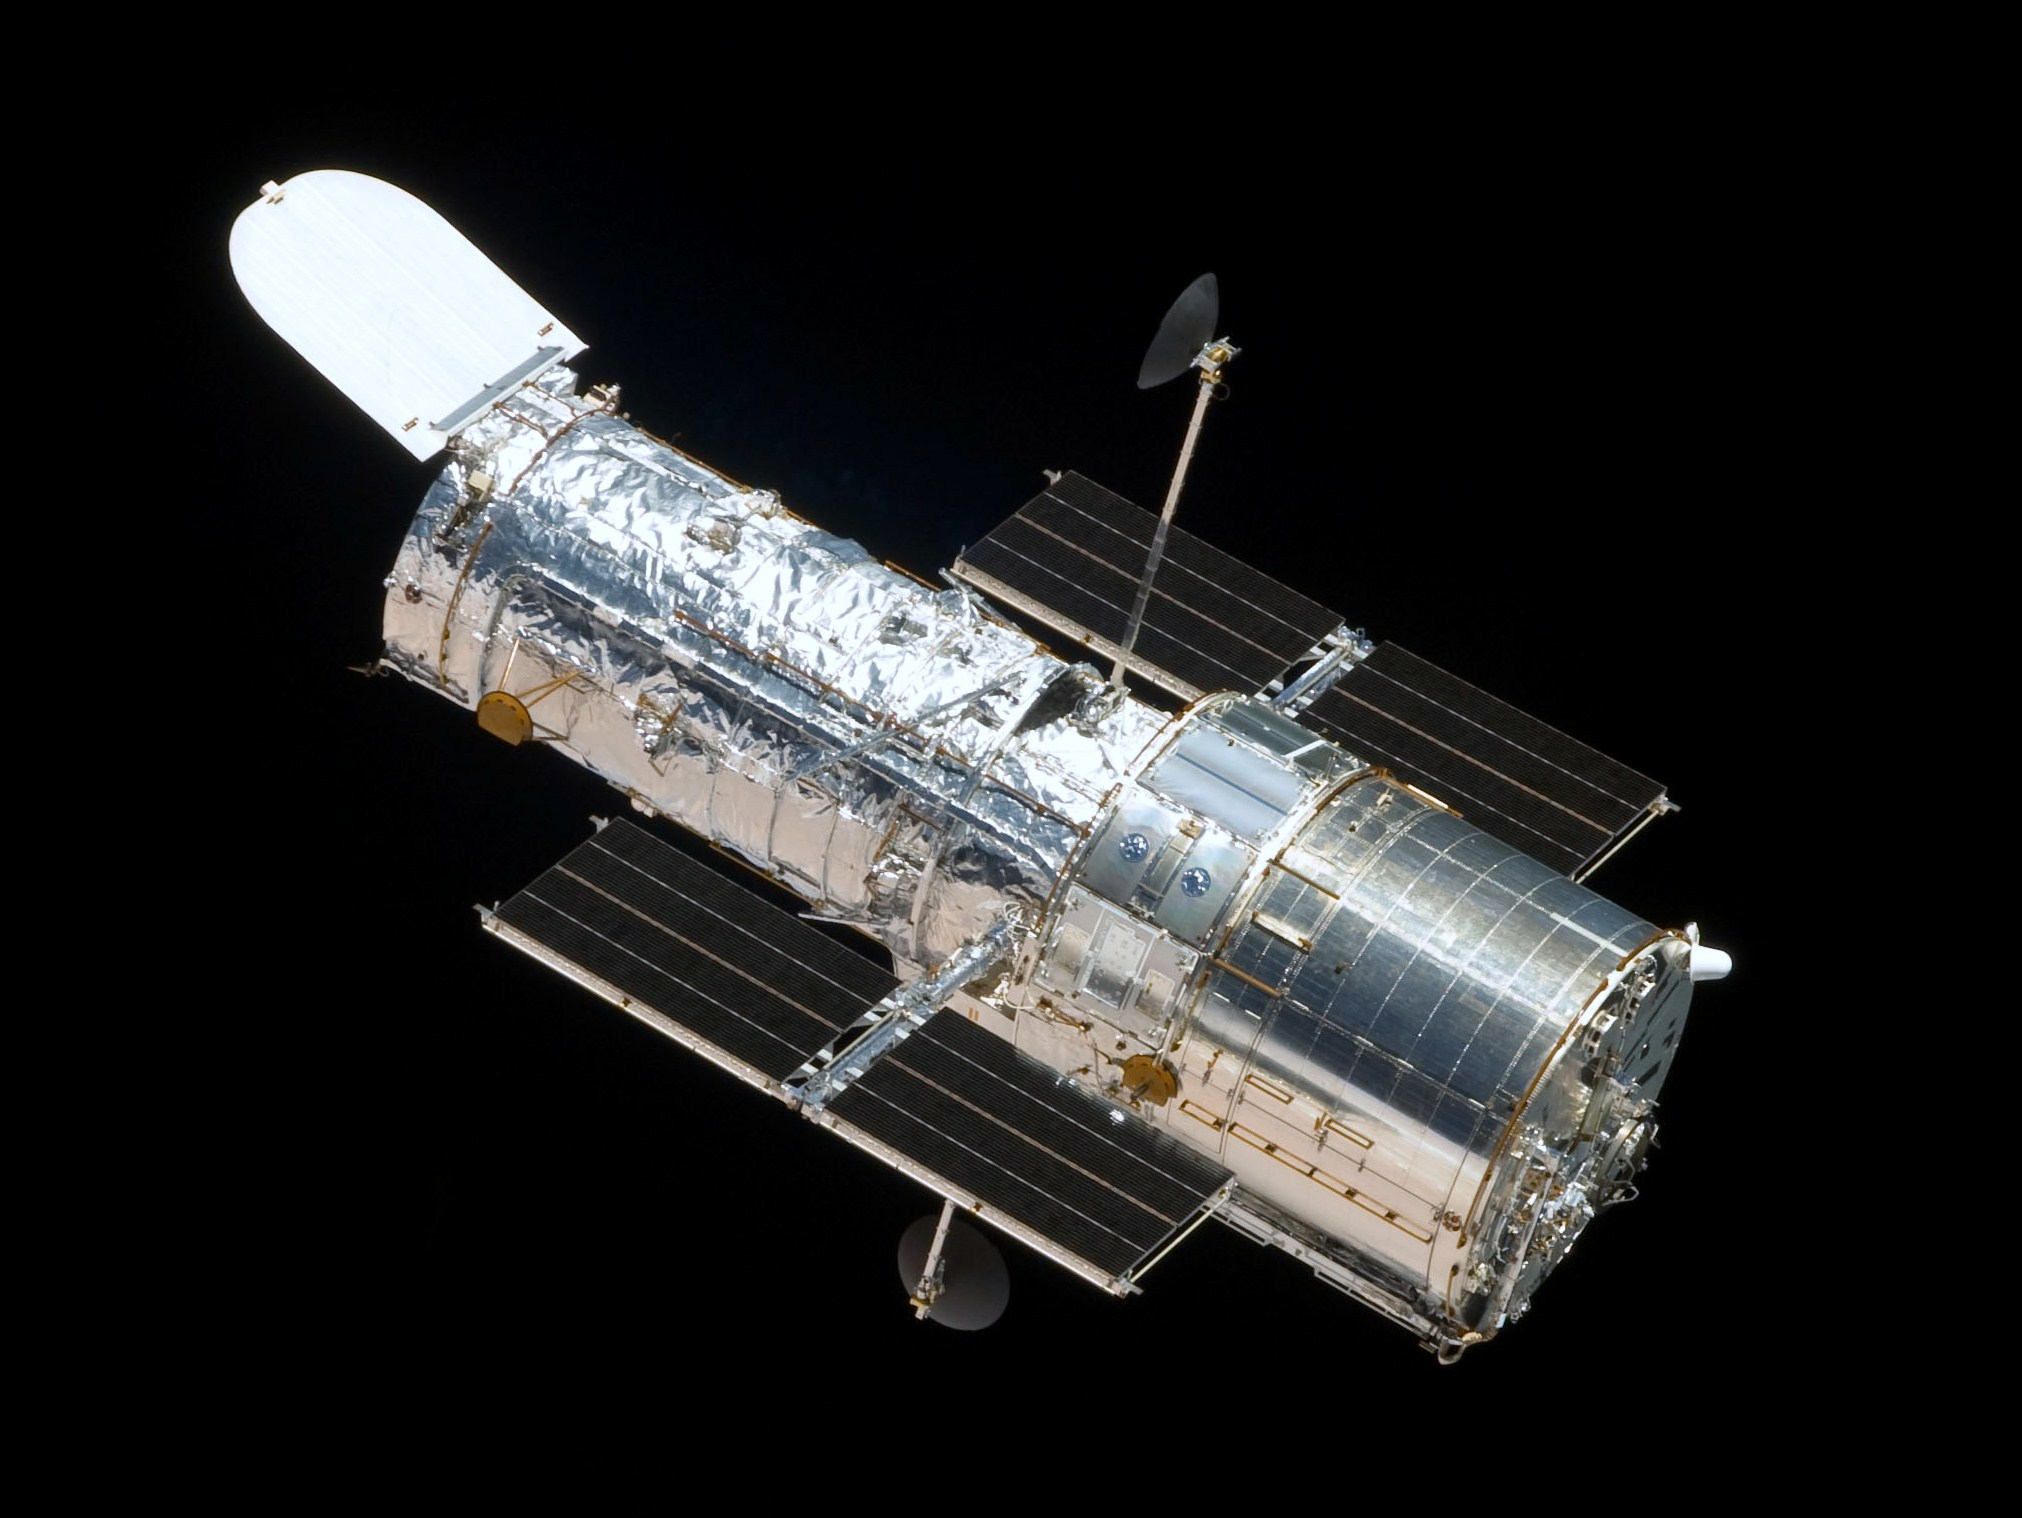 hubble space telescope In this april 25, 1990, photograph taken by the crew of the sts-31 space shuttle mission, the hubble space telescope is suspended above shuttle discovery's cargo bay some 332 nautical miles above earth.